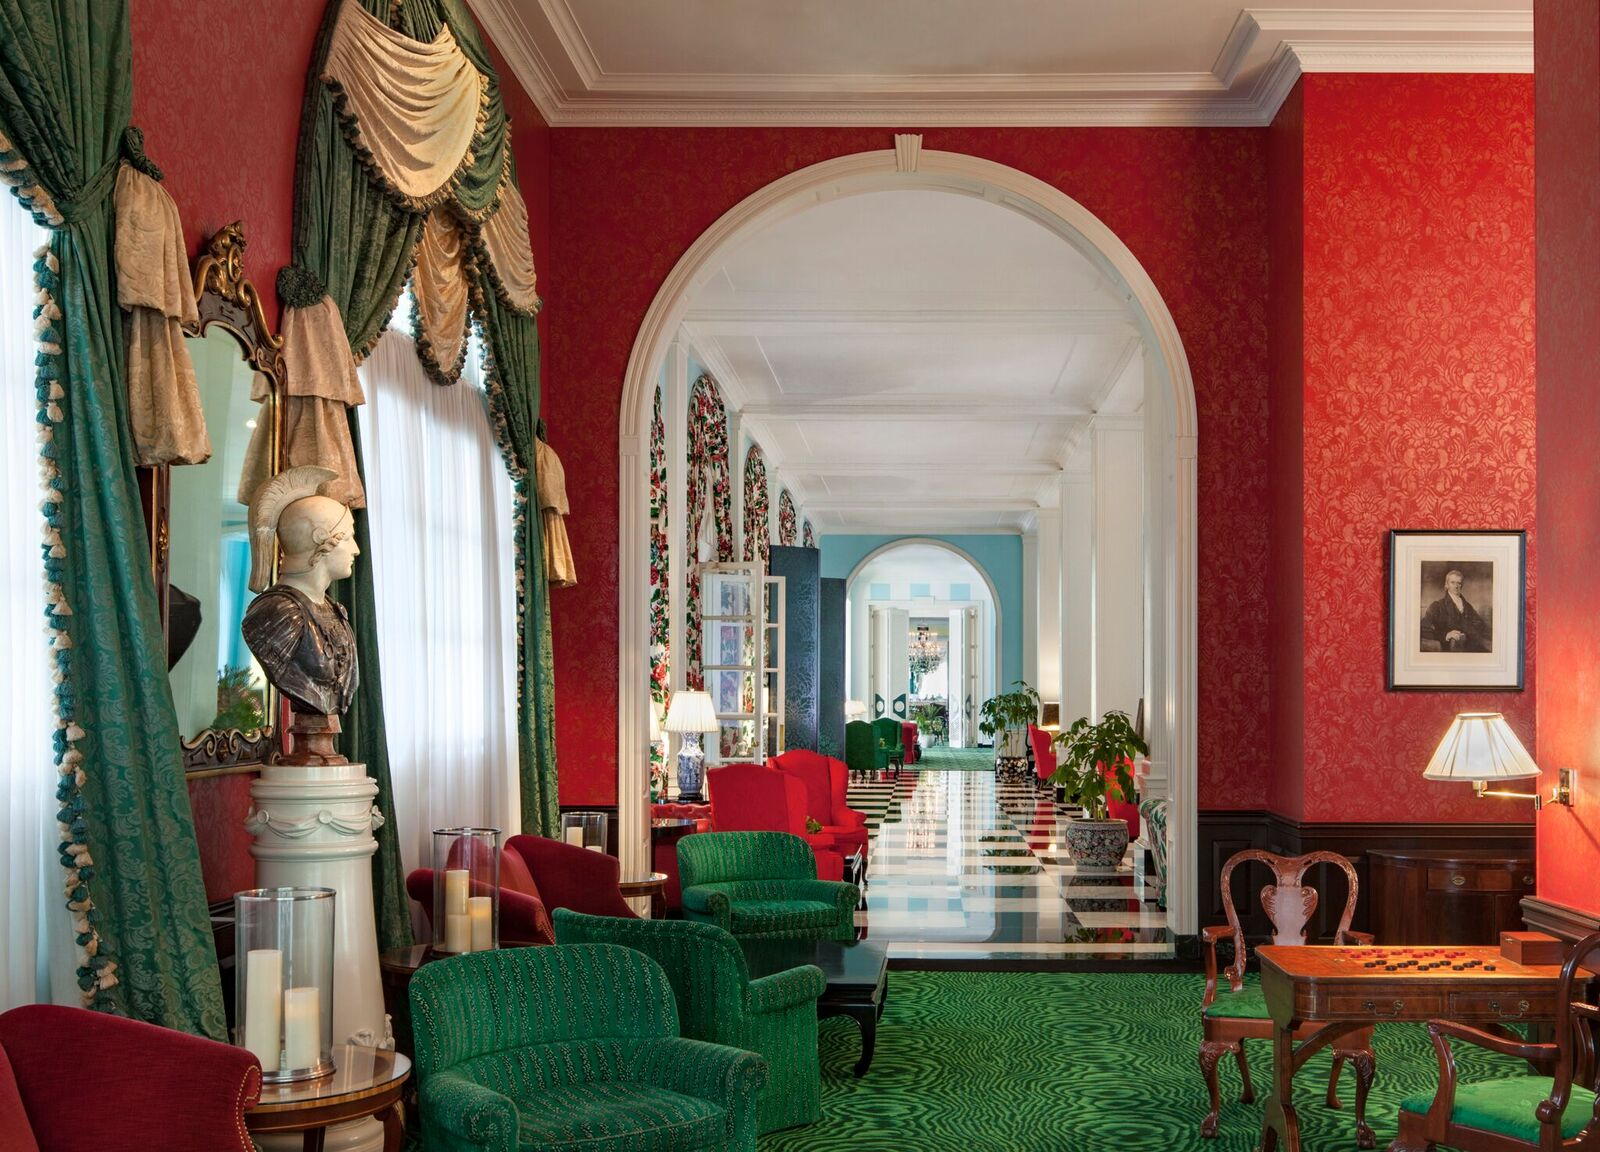 The lobby bar features red hand-painted walls as well as views into the trellis room.{ }(Image: Courtesy The Greenbrier)